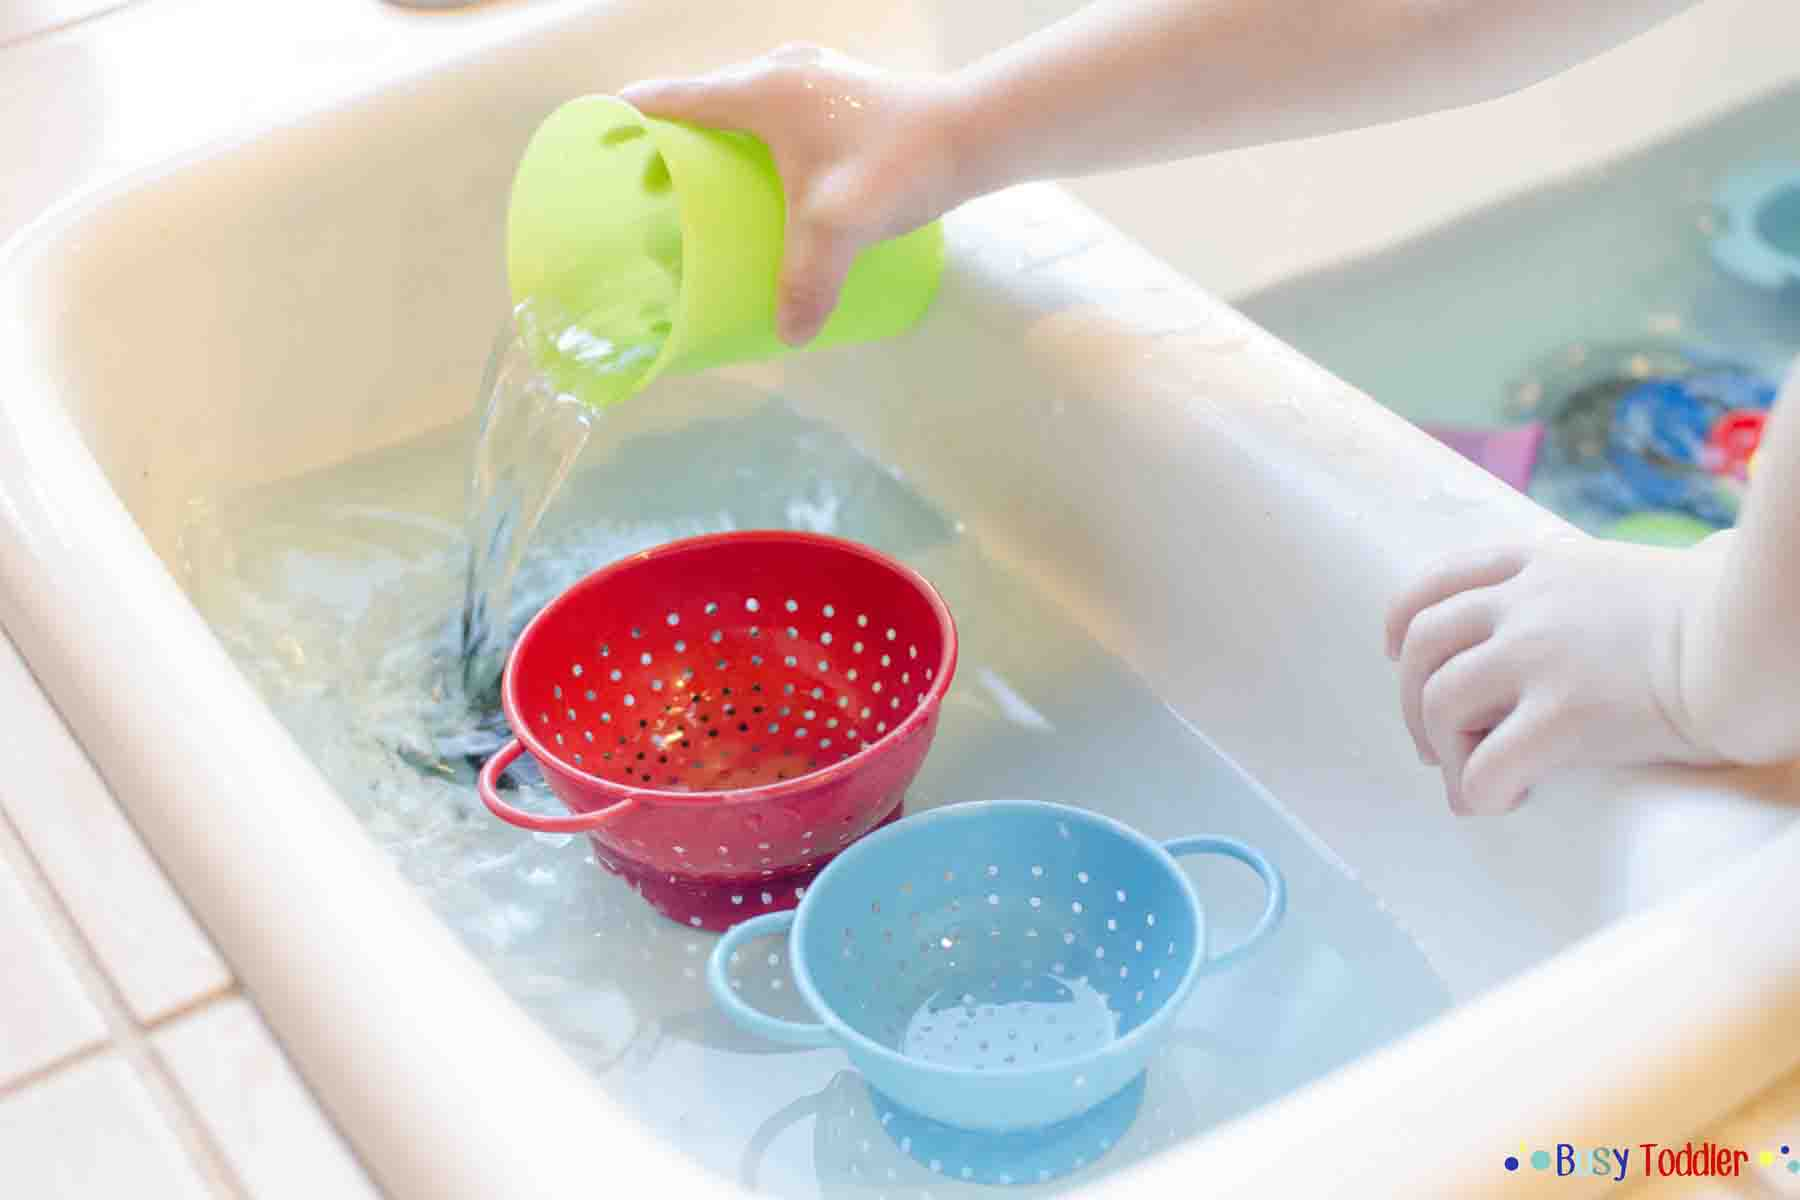 Colander Pour: a kitchen sink activity with water fun.